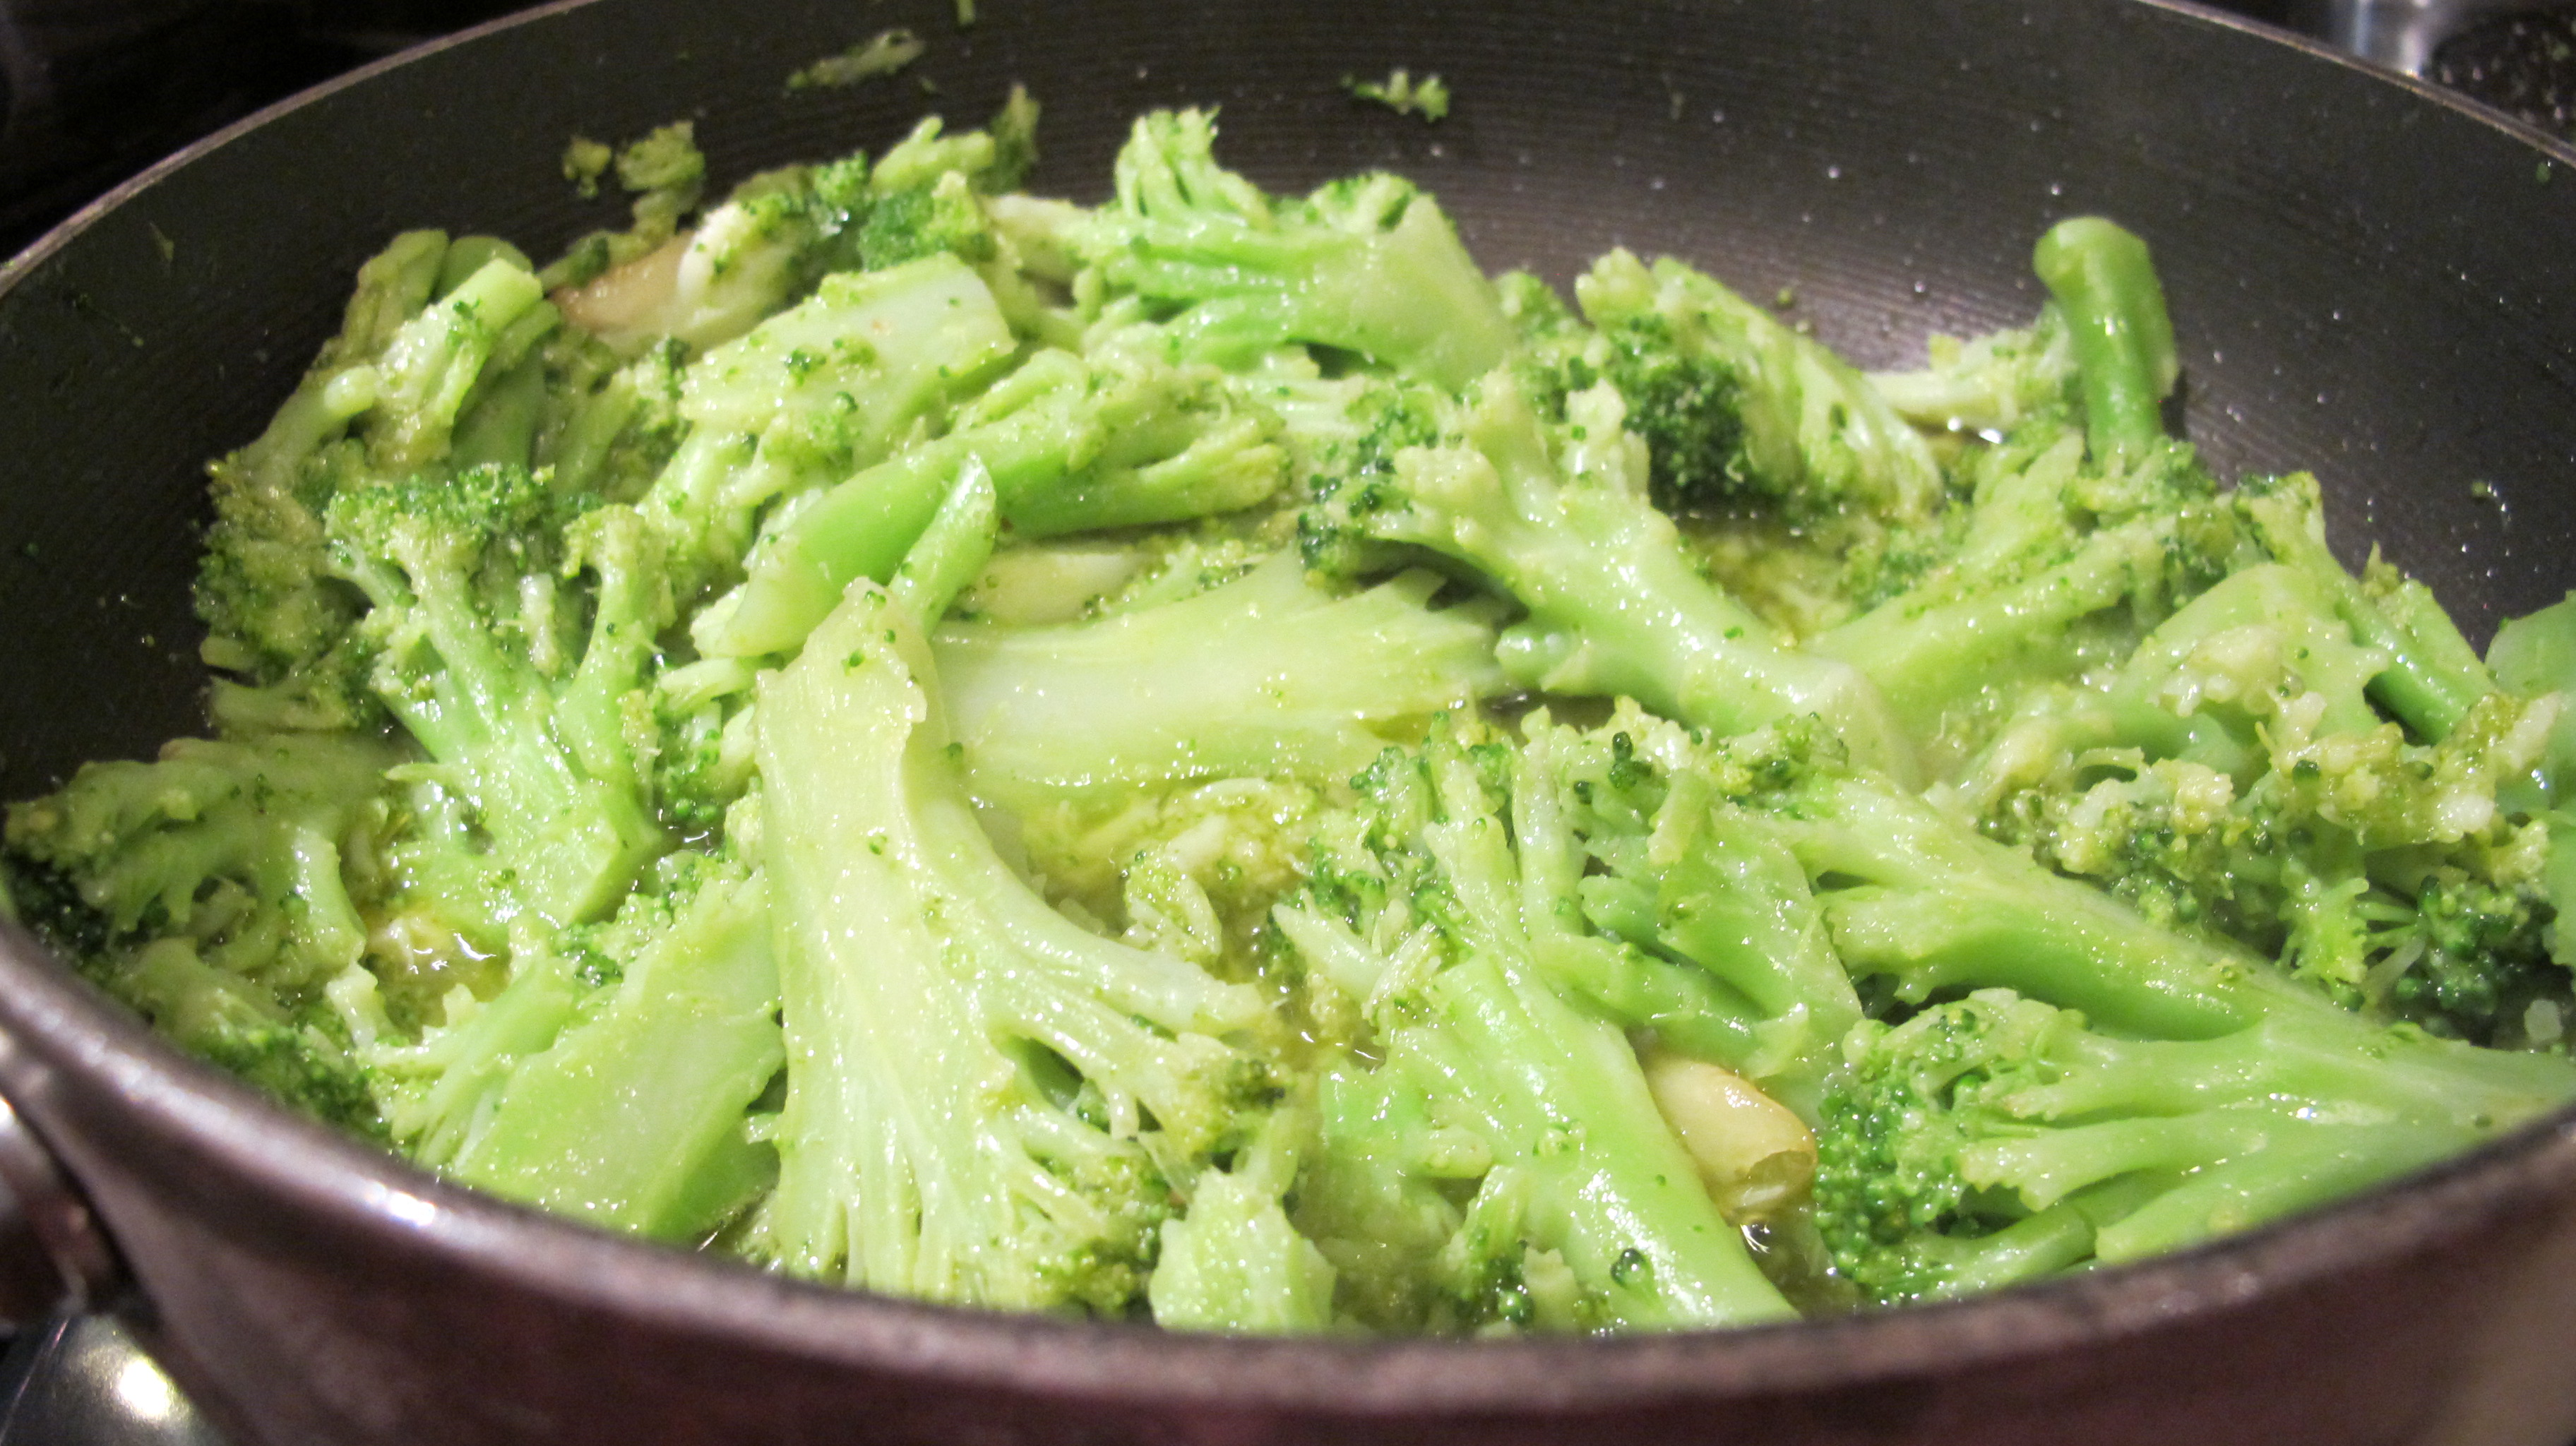 The broccoli is sautéed in with the garlic-olive oil.